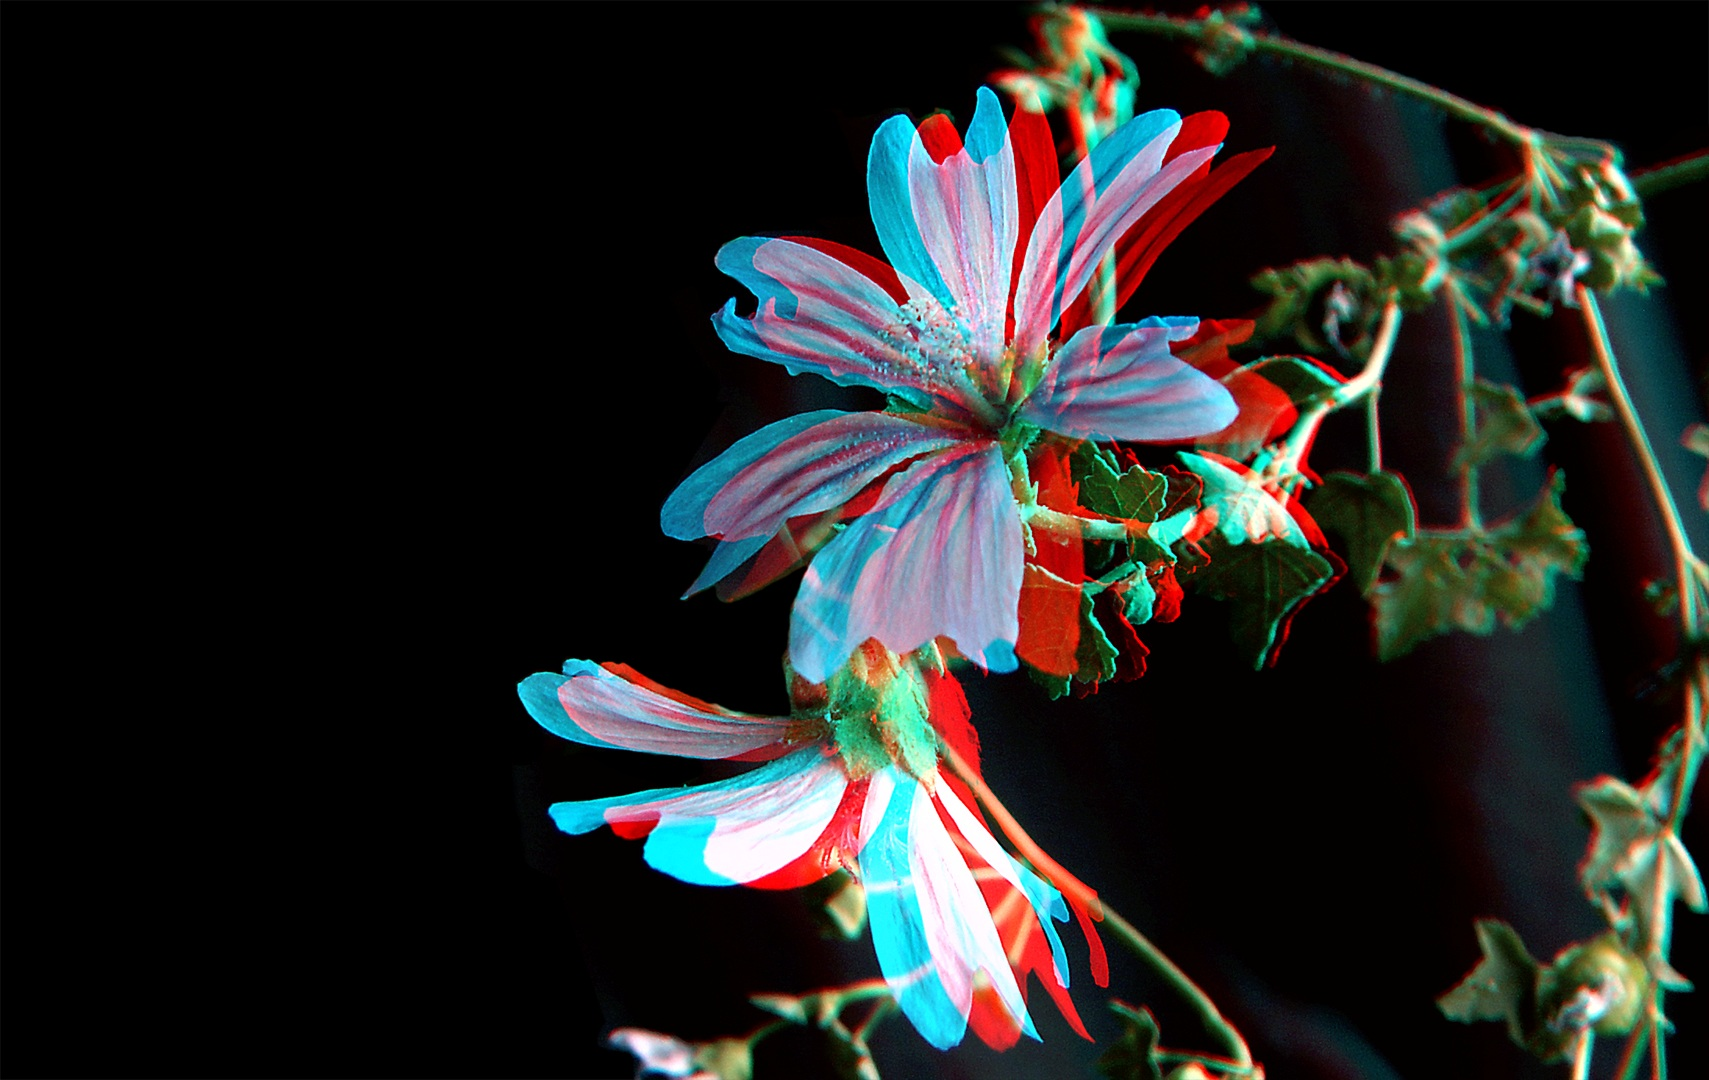 fb1e591bb2 A flower shown in anaglyph (red blue) 3D  Image Credit  Jose Paulo Carvalho  Pereira